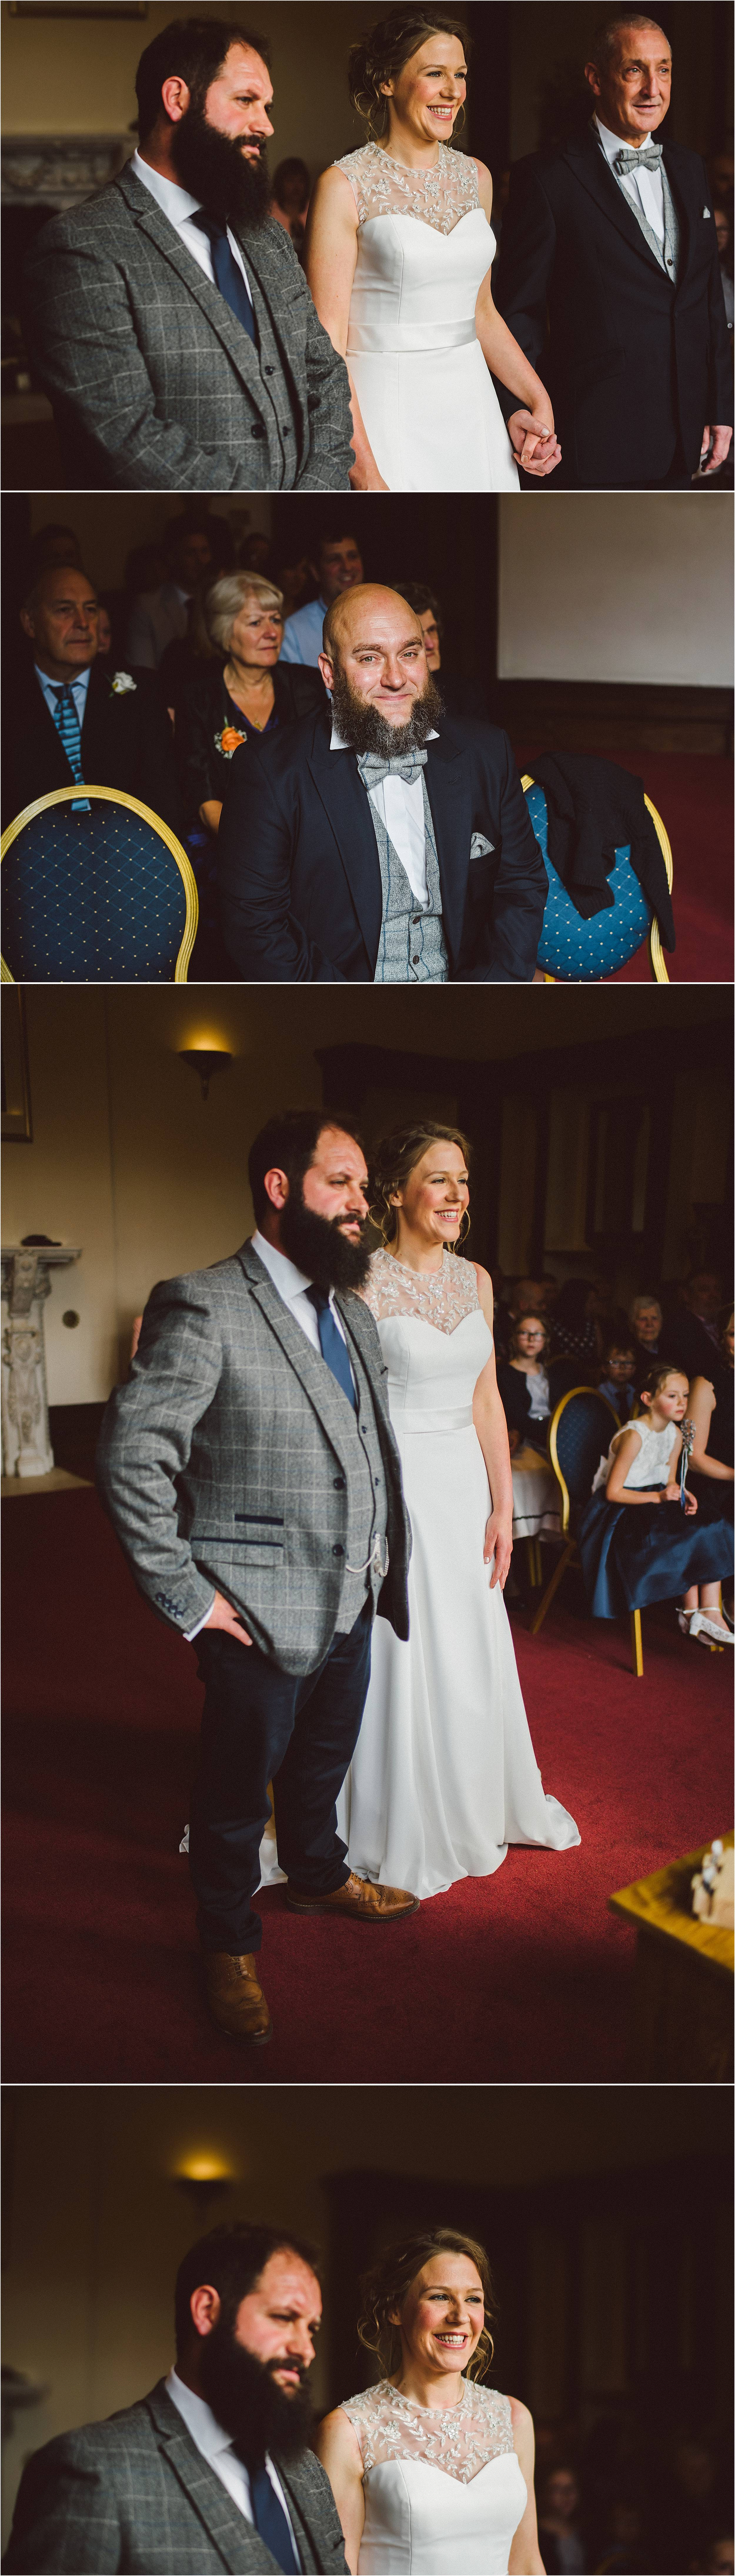 The Great Central Railway Wedding Photography_0033.jpg